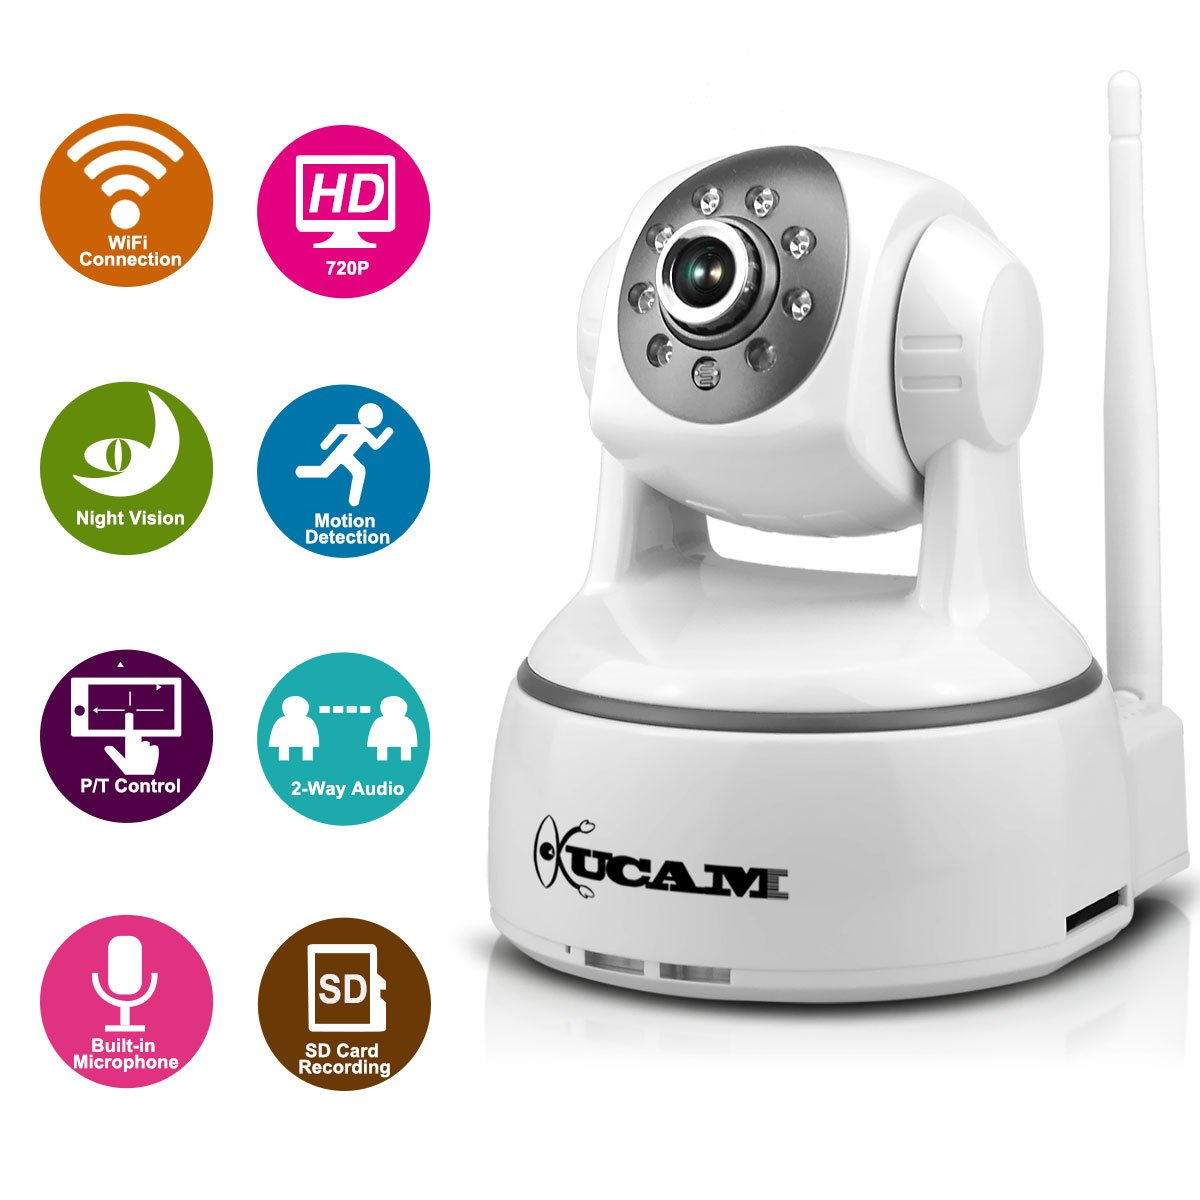 WiFi IP Camera, KUCAM HD Wireless Home Security Surveillance/Baby Video Monitor Nanny Cam, 720P, 2-Way Audio, Night Vision, Motion Detect & Alerts